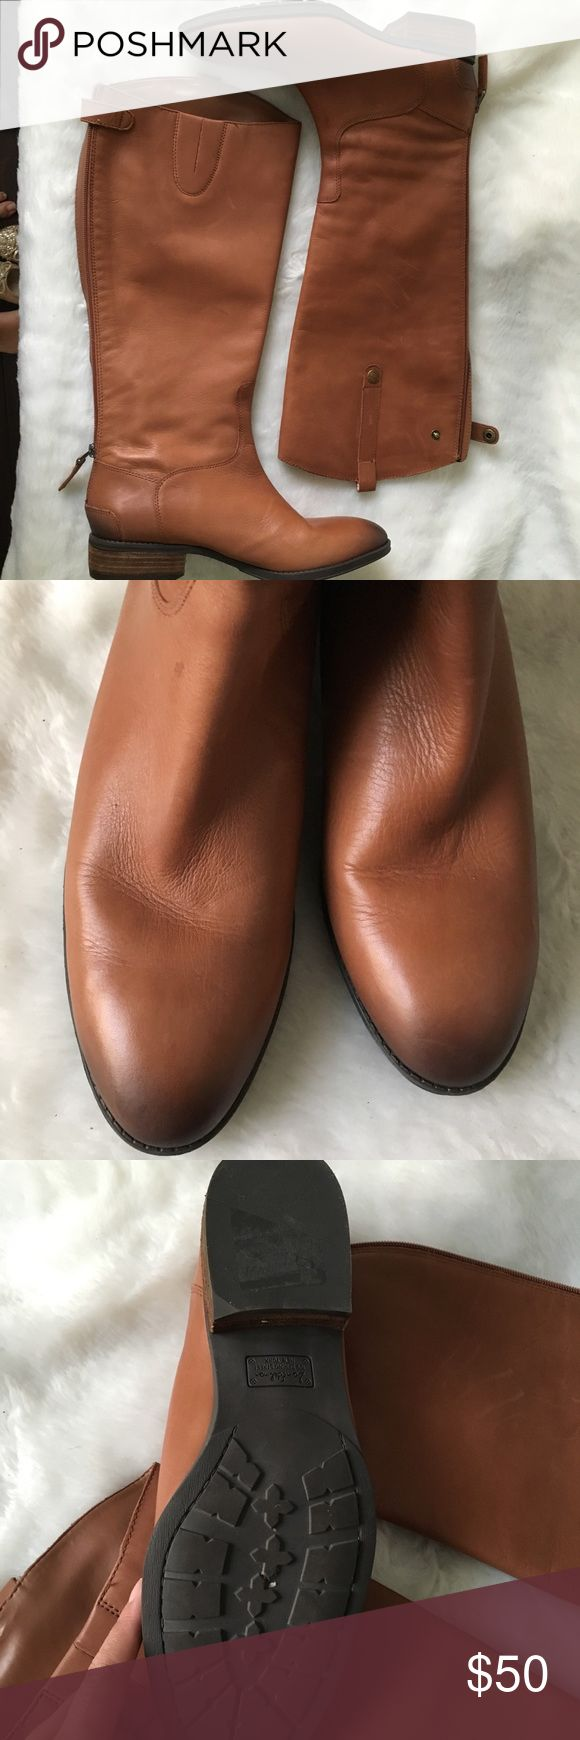 Sam Edelman Penny Tall Tan leather boot 10 Does not include the original box.  Tall leather boot.  Back zipper entry.  This is not a wide calf fit. Light scratches that can happen with leather., easy to polish out. NO TRADES Sam Edelman Shoes